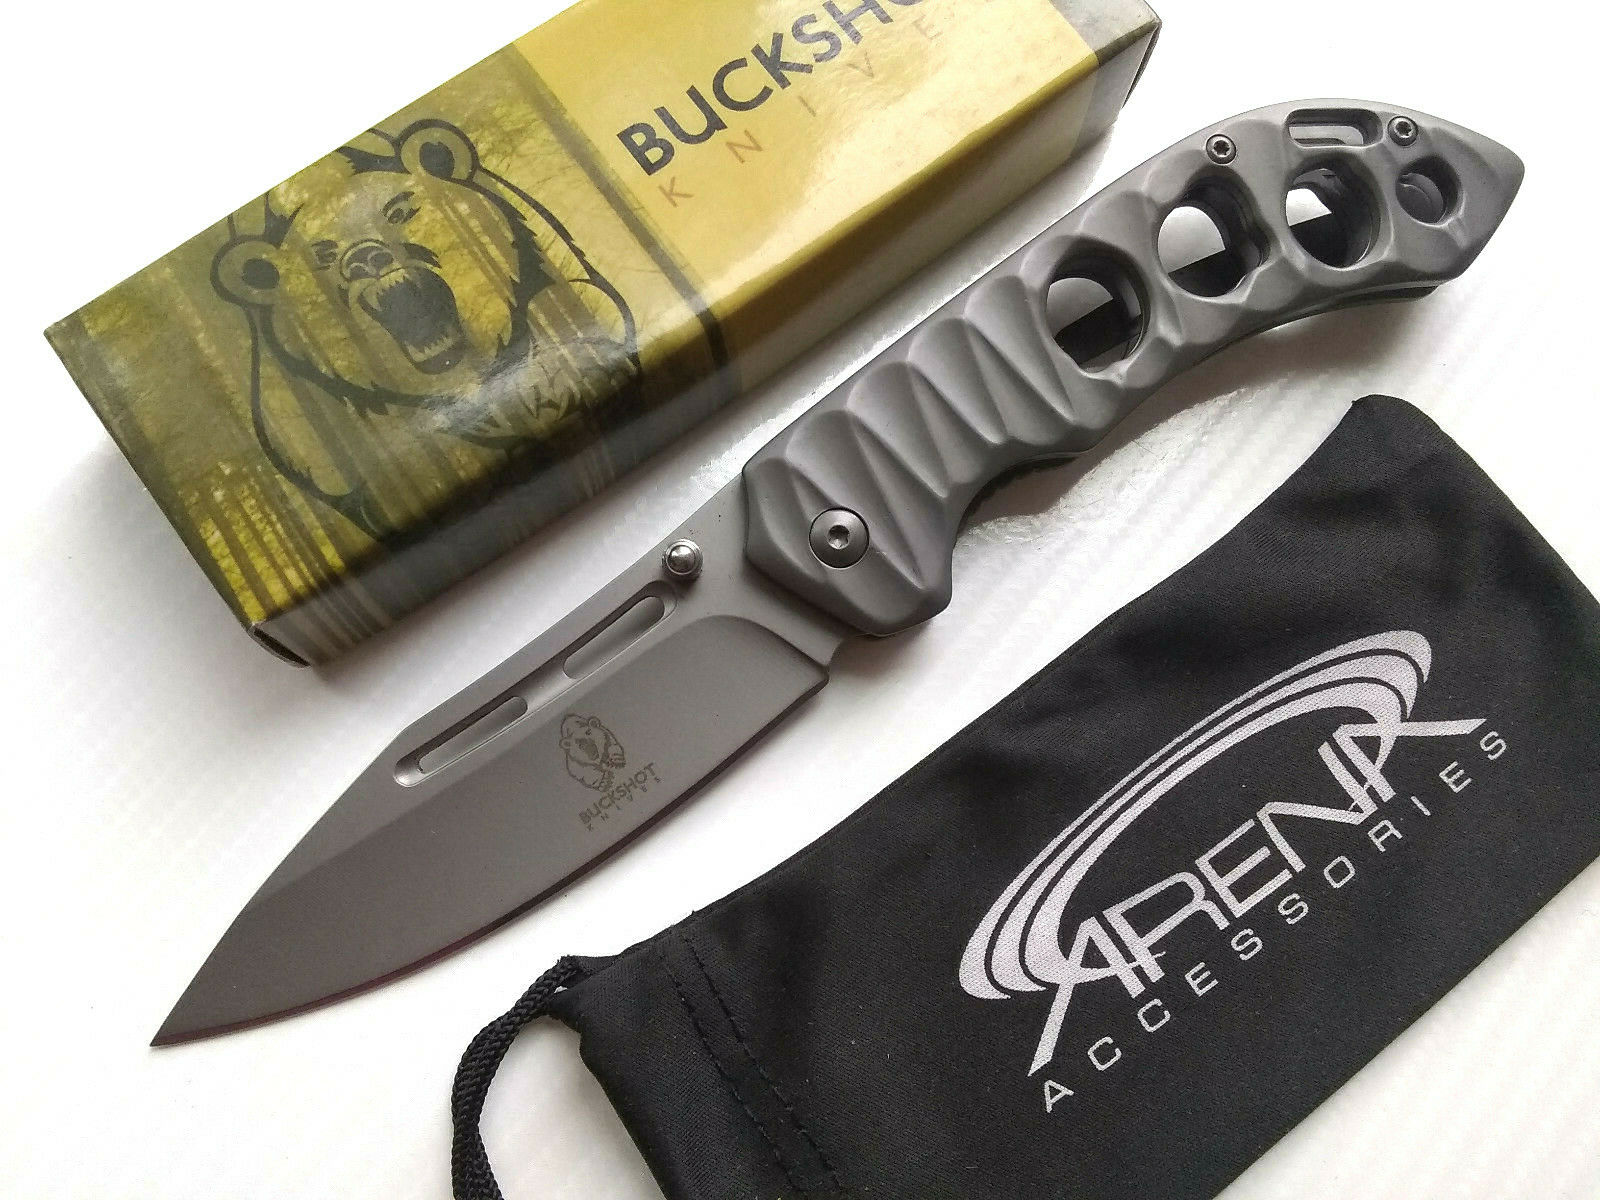 Buckshot Matte Silver Skeletonized Pocket Knife Spring Assisted Frame Lock Flipper EDC